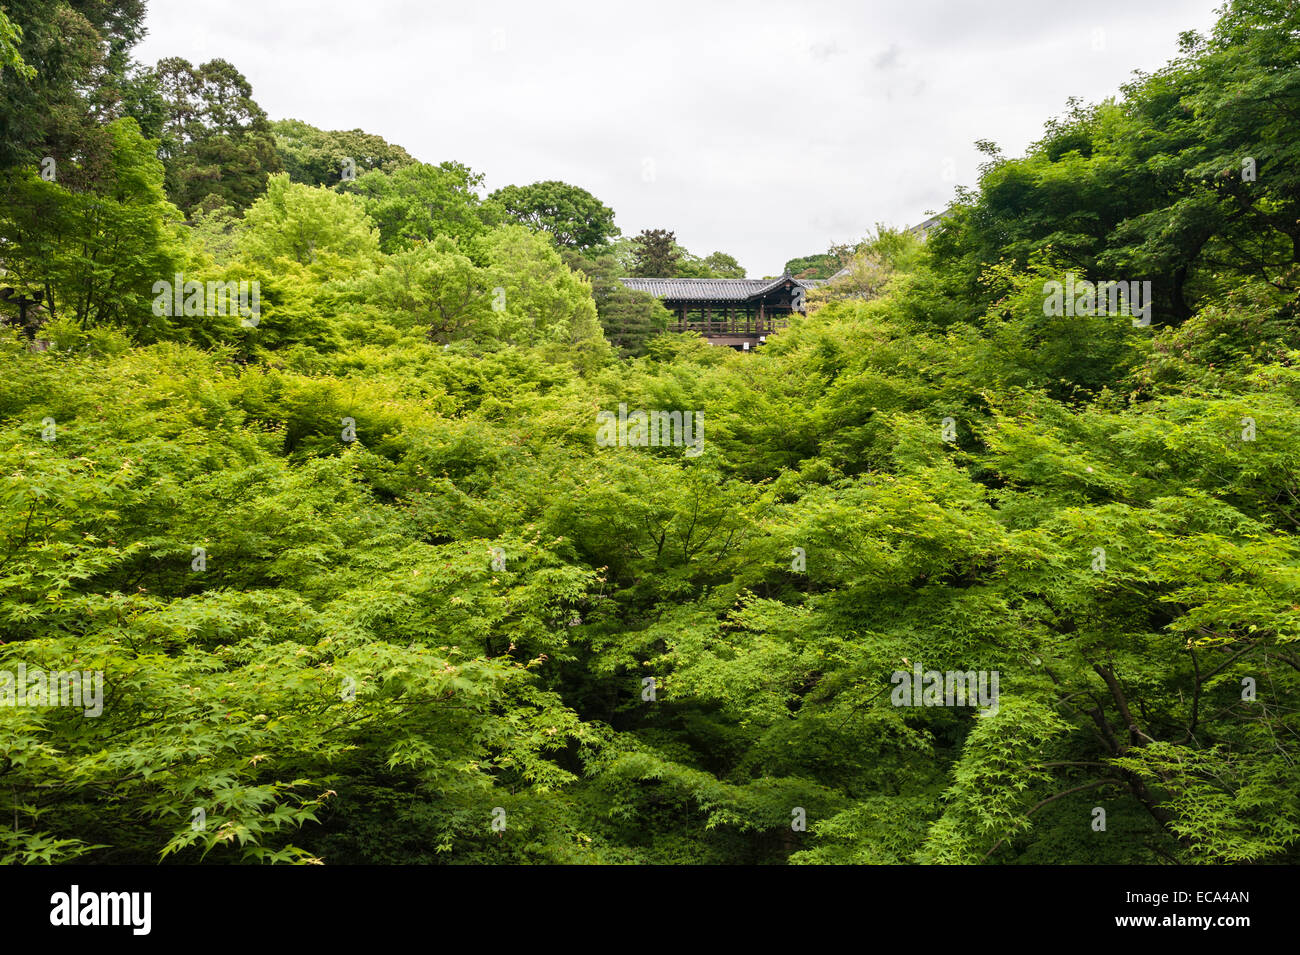 Kyoto, Japan. The Tsuten-kyo bridge at Tofuku-ji temple crosses a valley filled with Japanese maple trees (acer - Stock Image